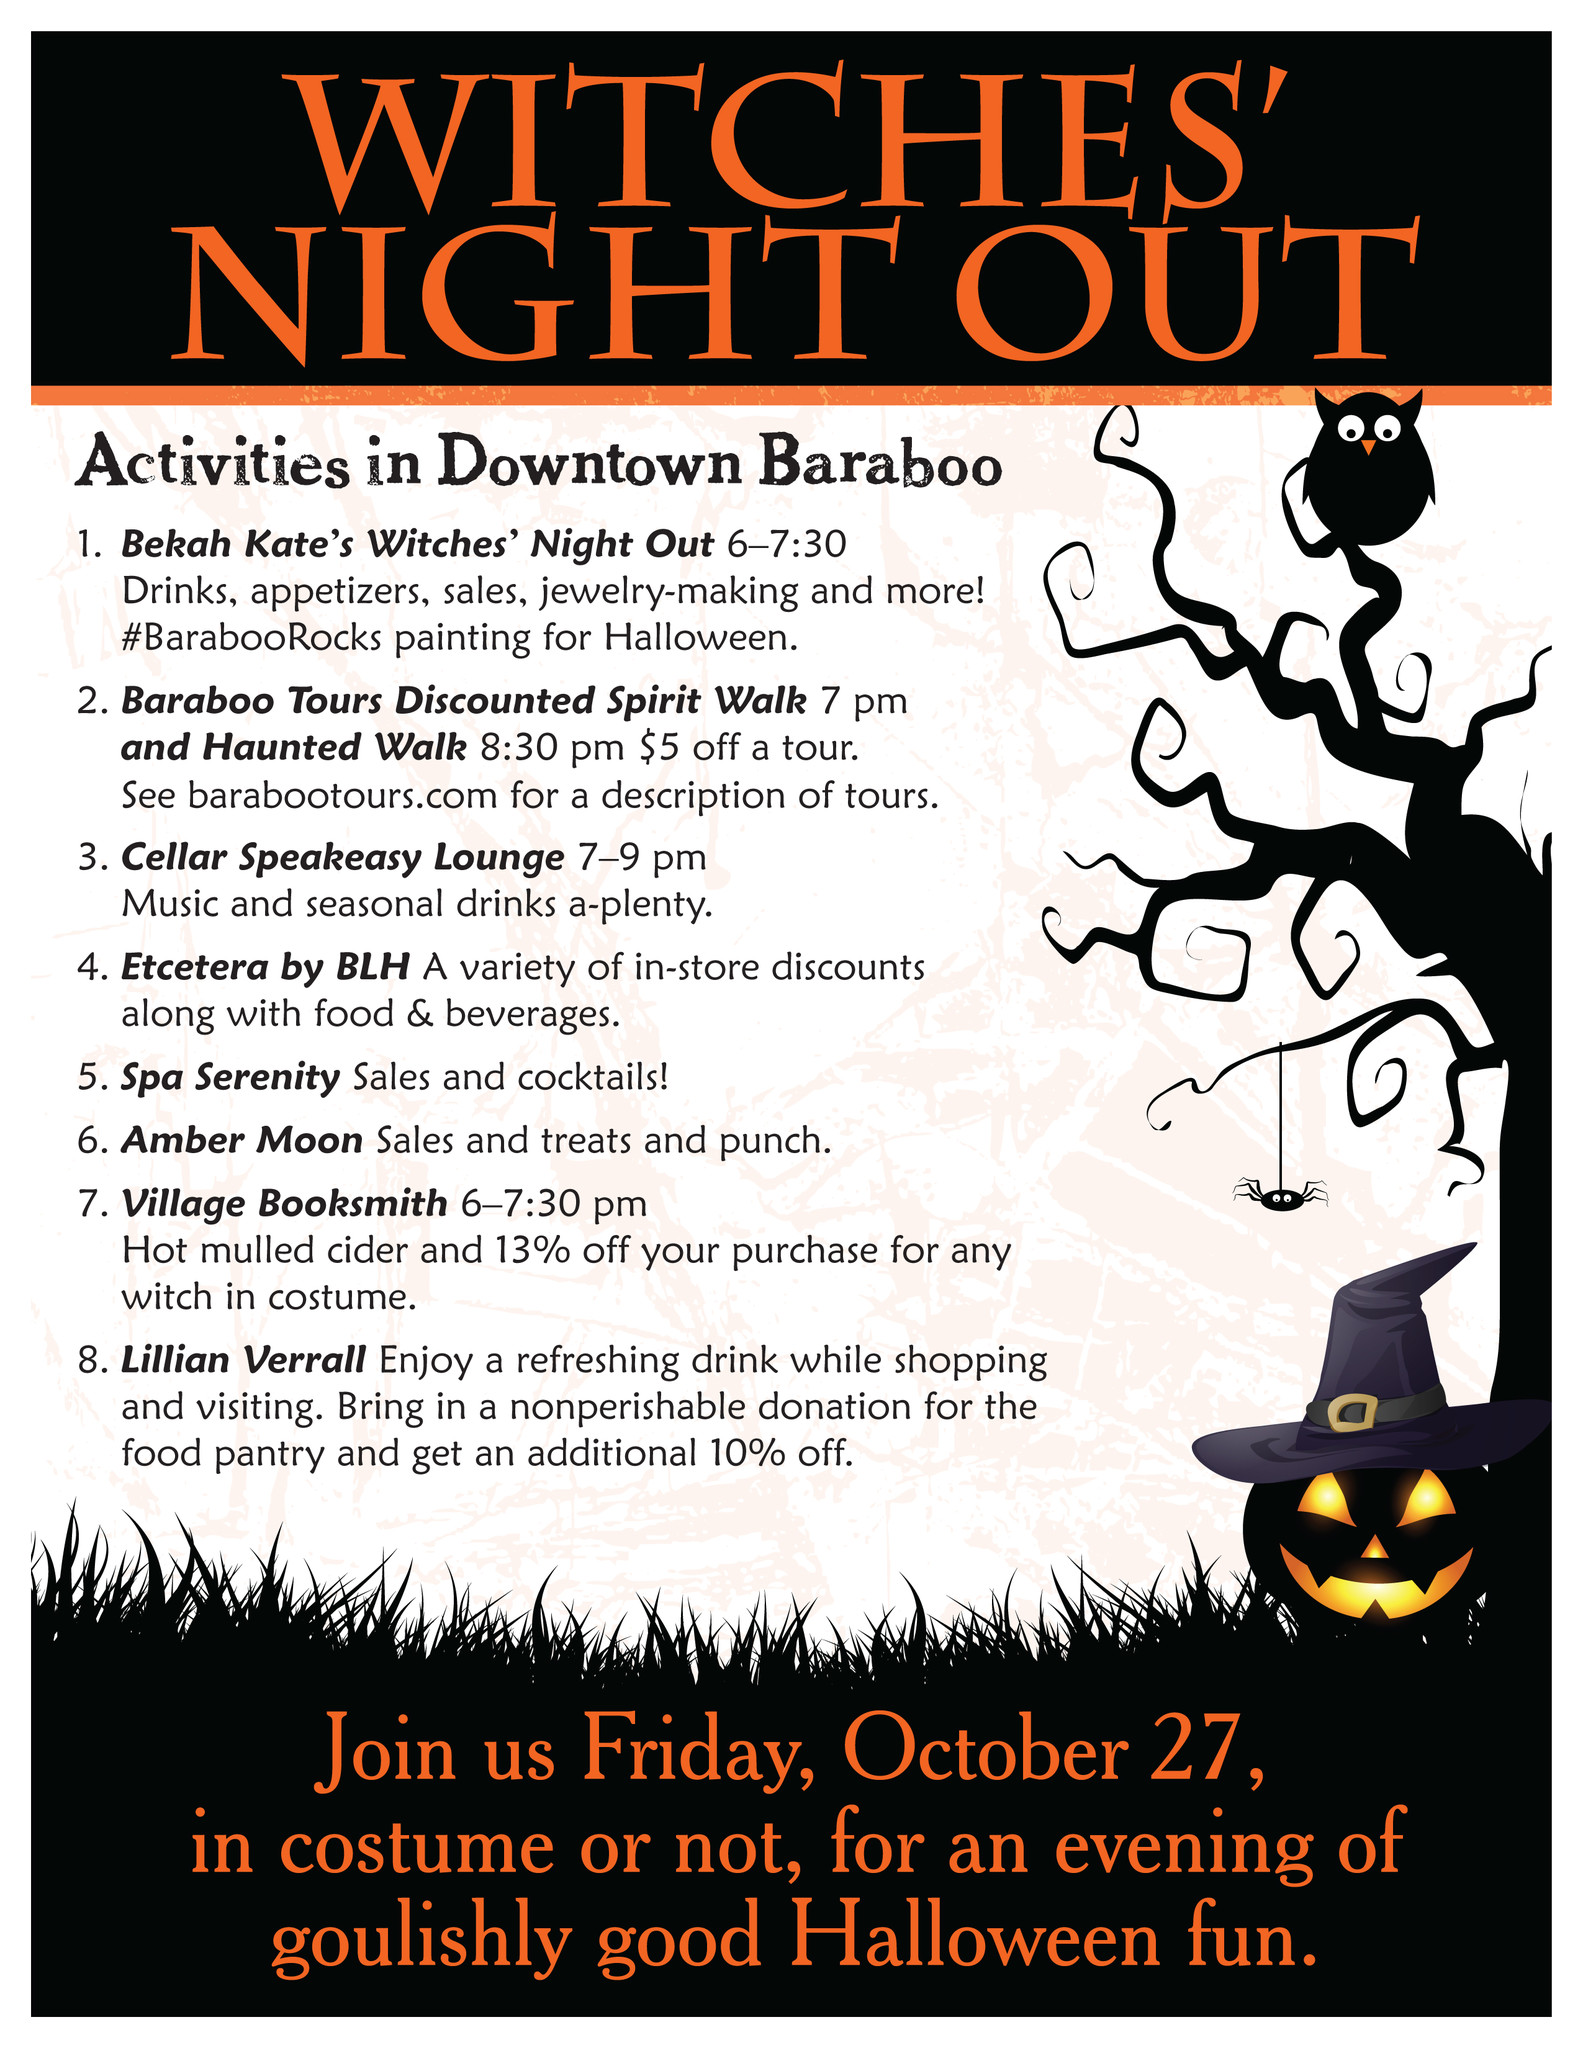 Witches' Night Out in Downtown Baraboo